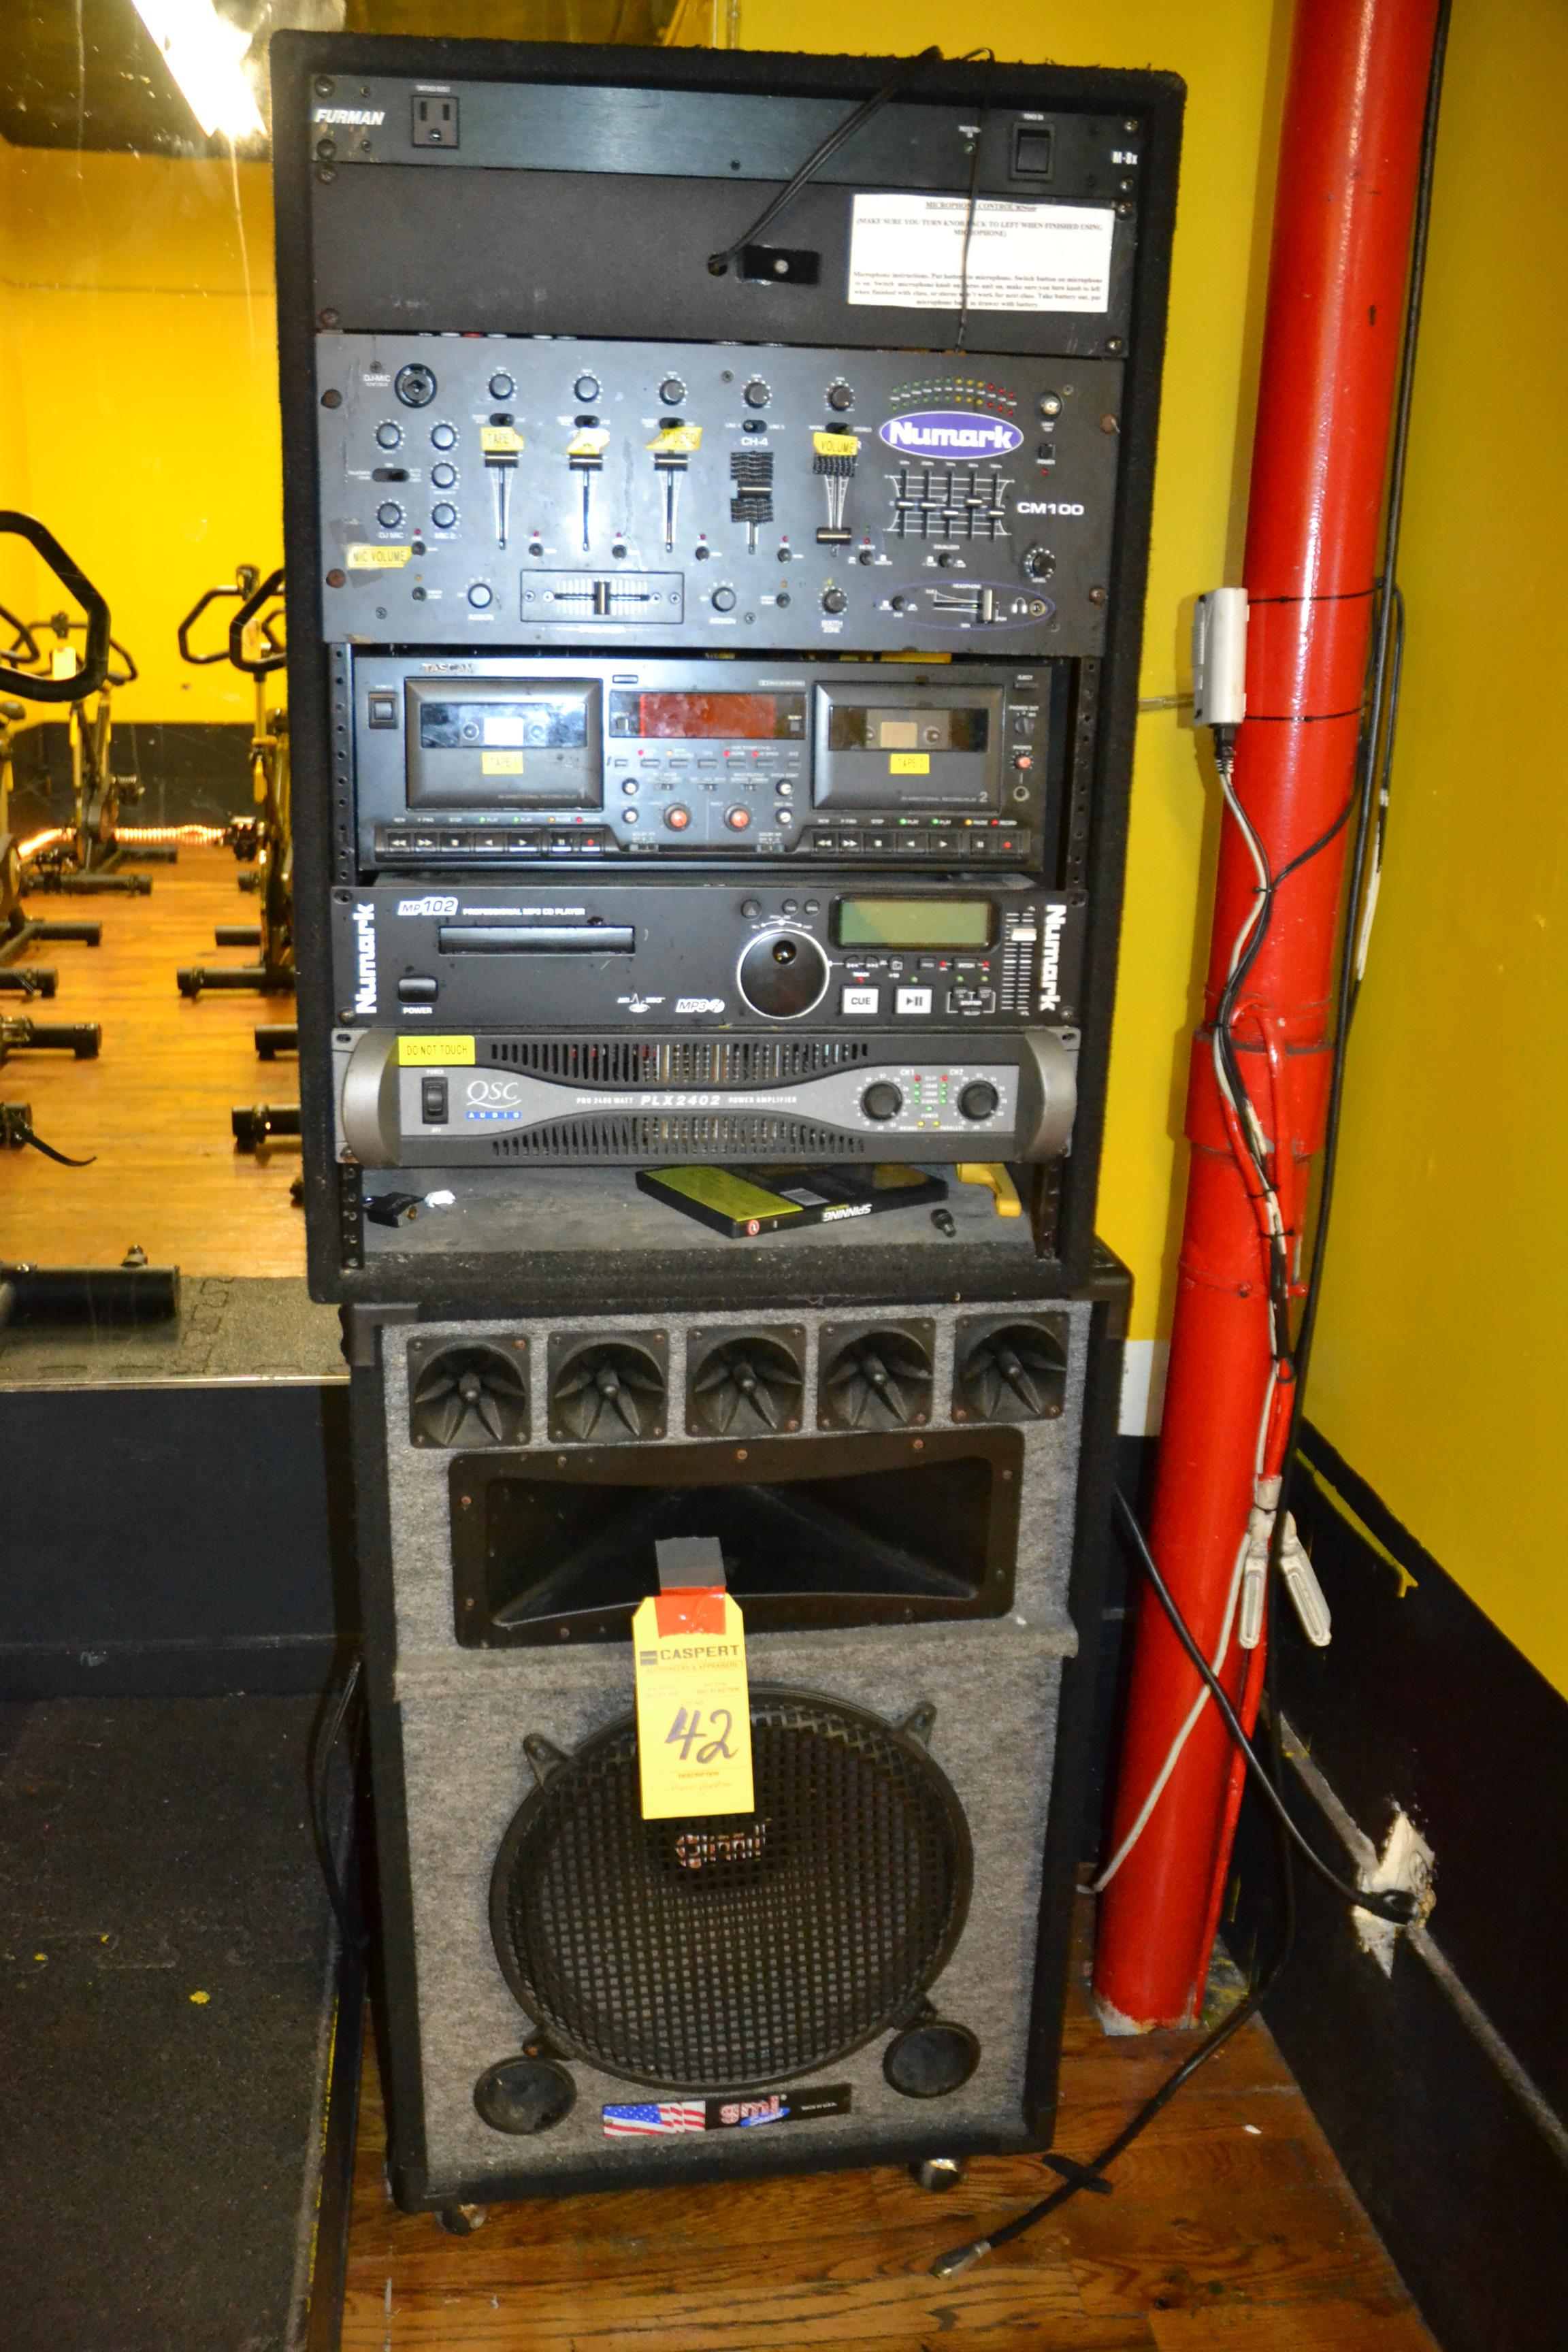 Lot 42 - SOUND SYSTEM WITH 2 GMI SPEAKERS